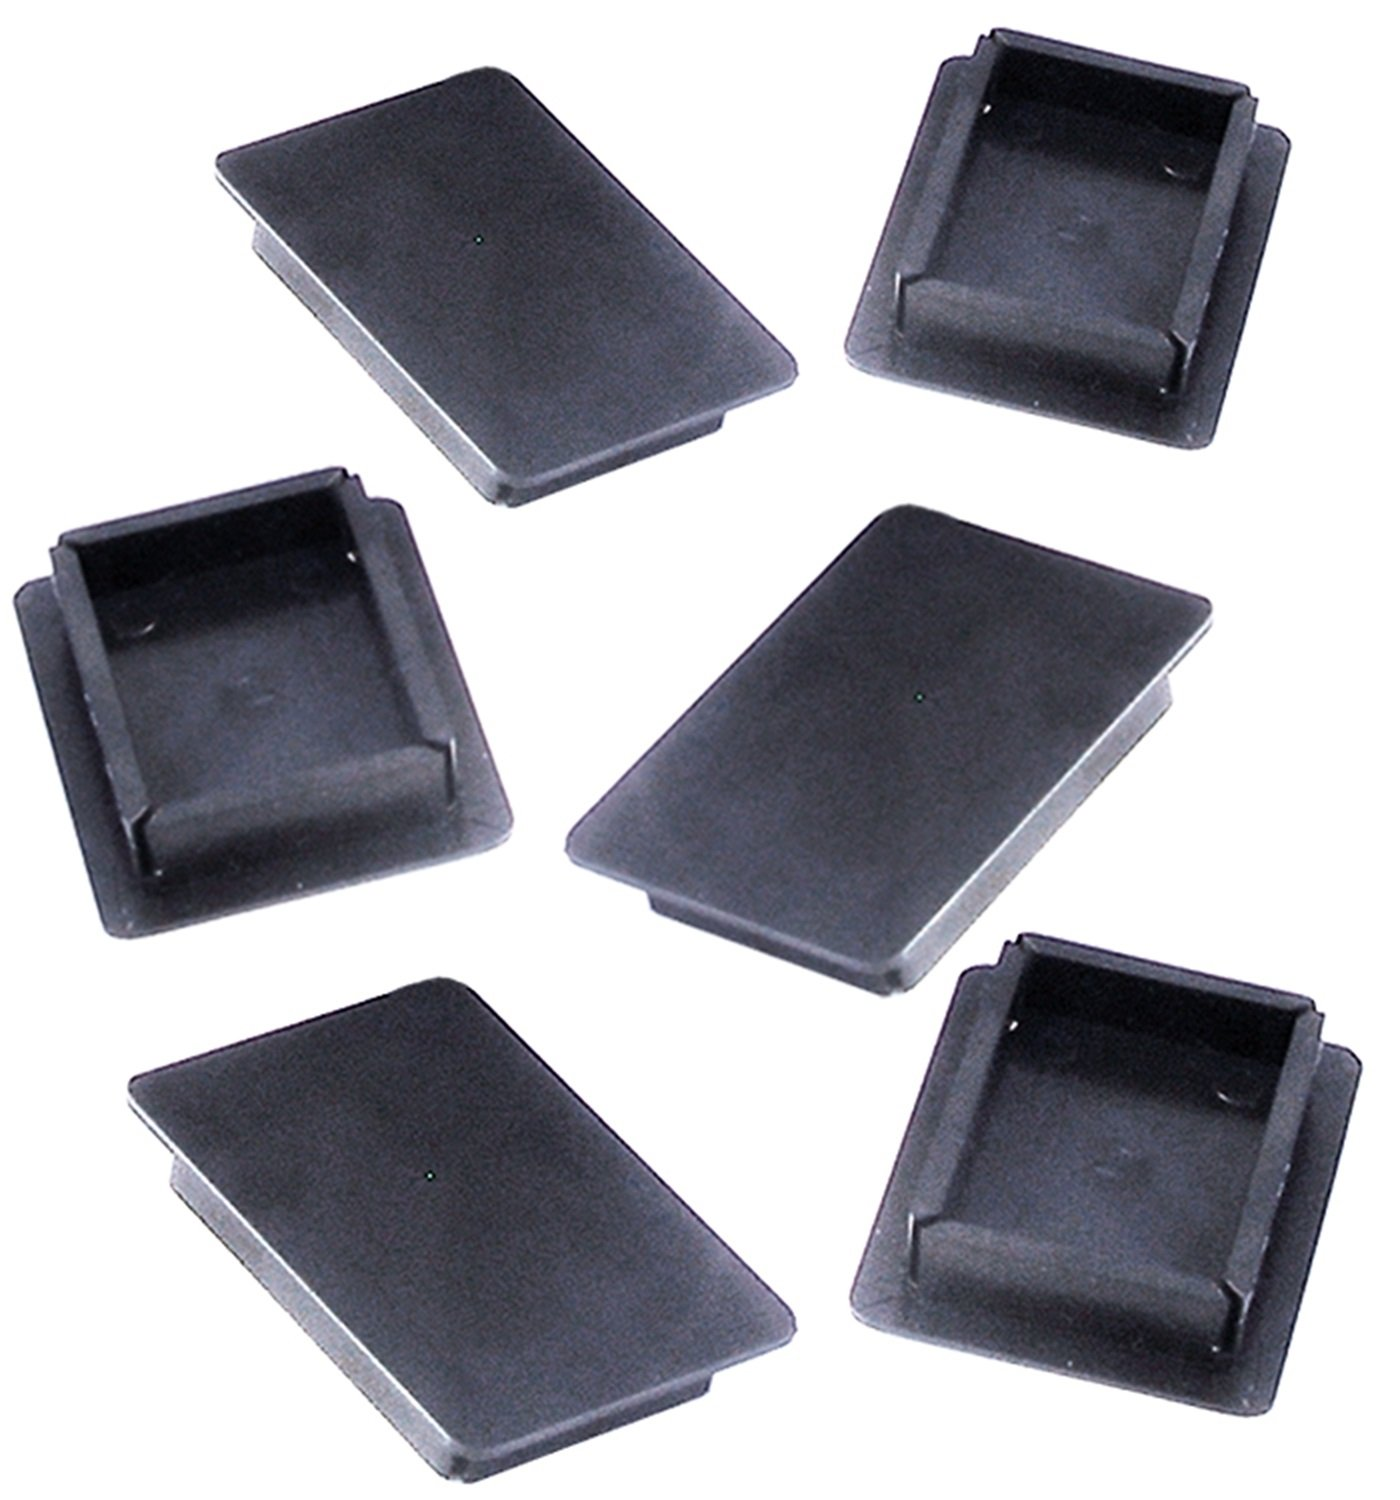 Trans-Dapt 8795 Stake Pocket Covers Set of 6